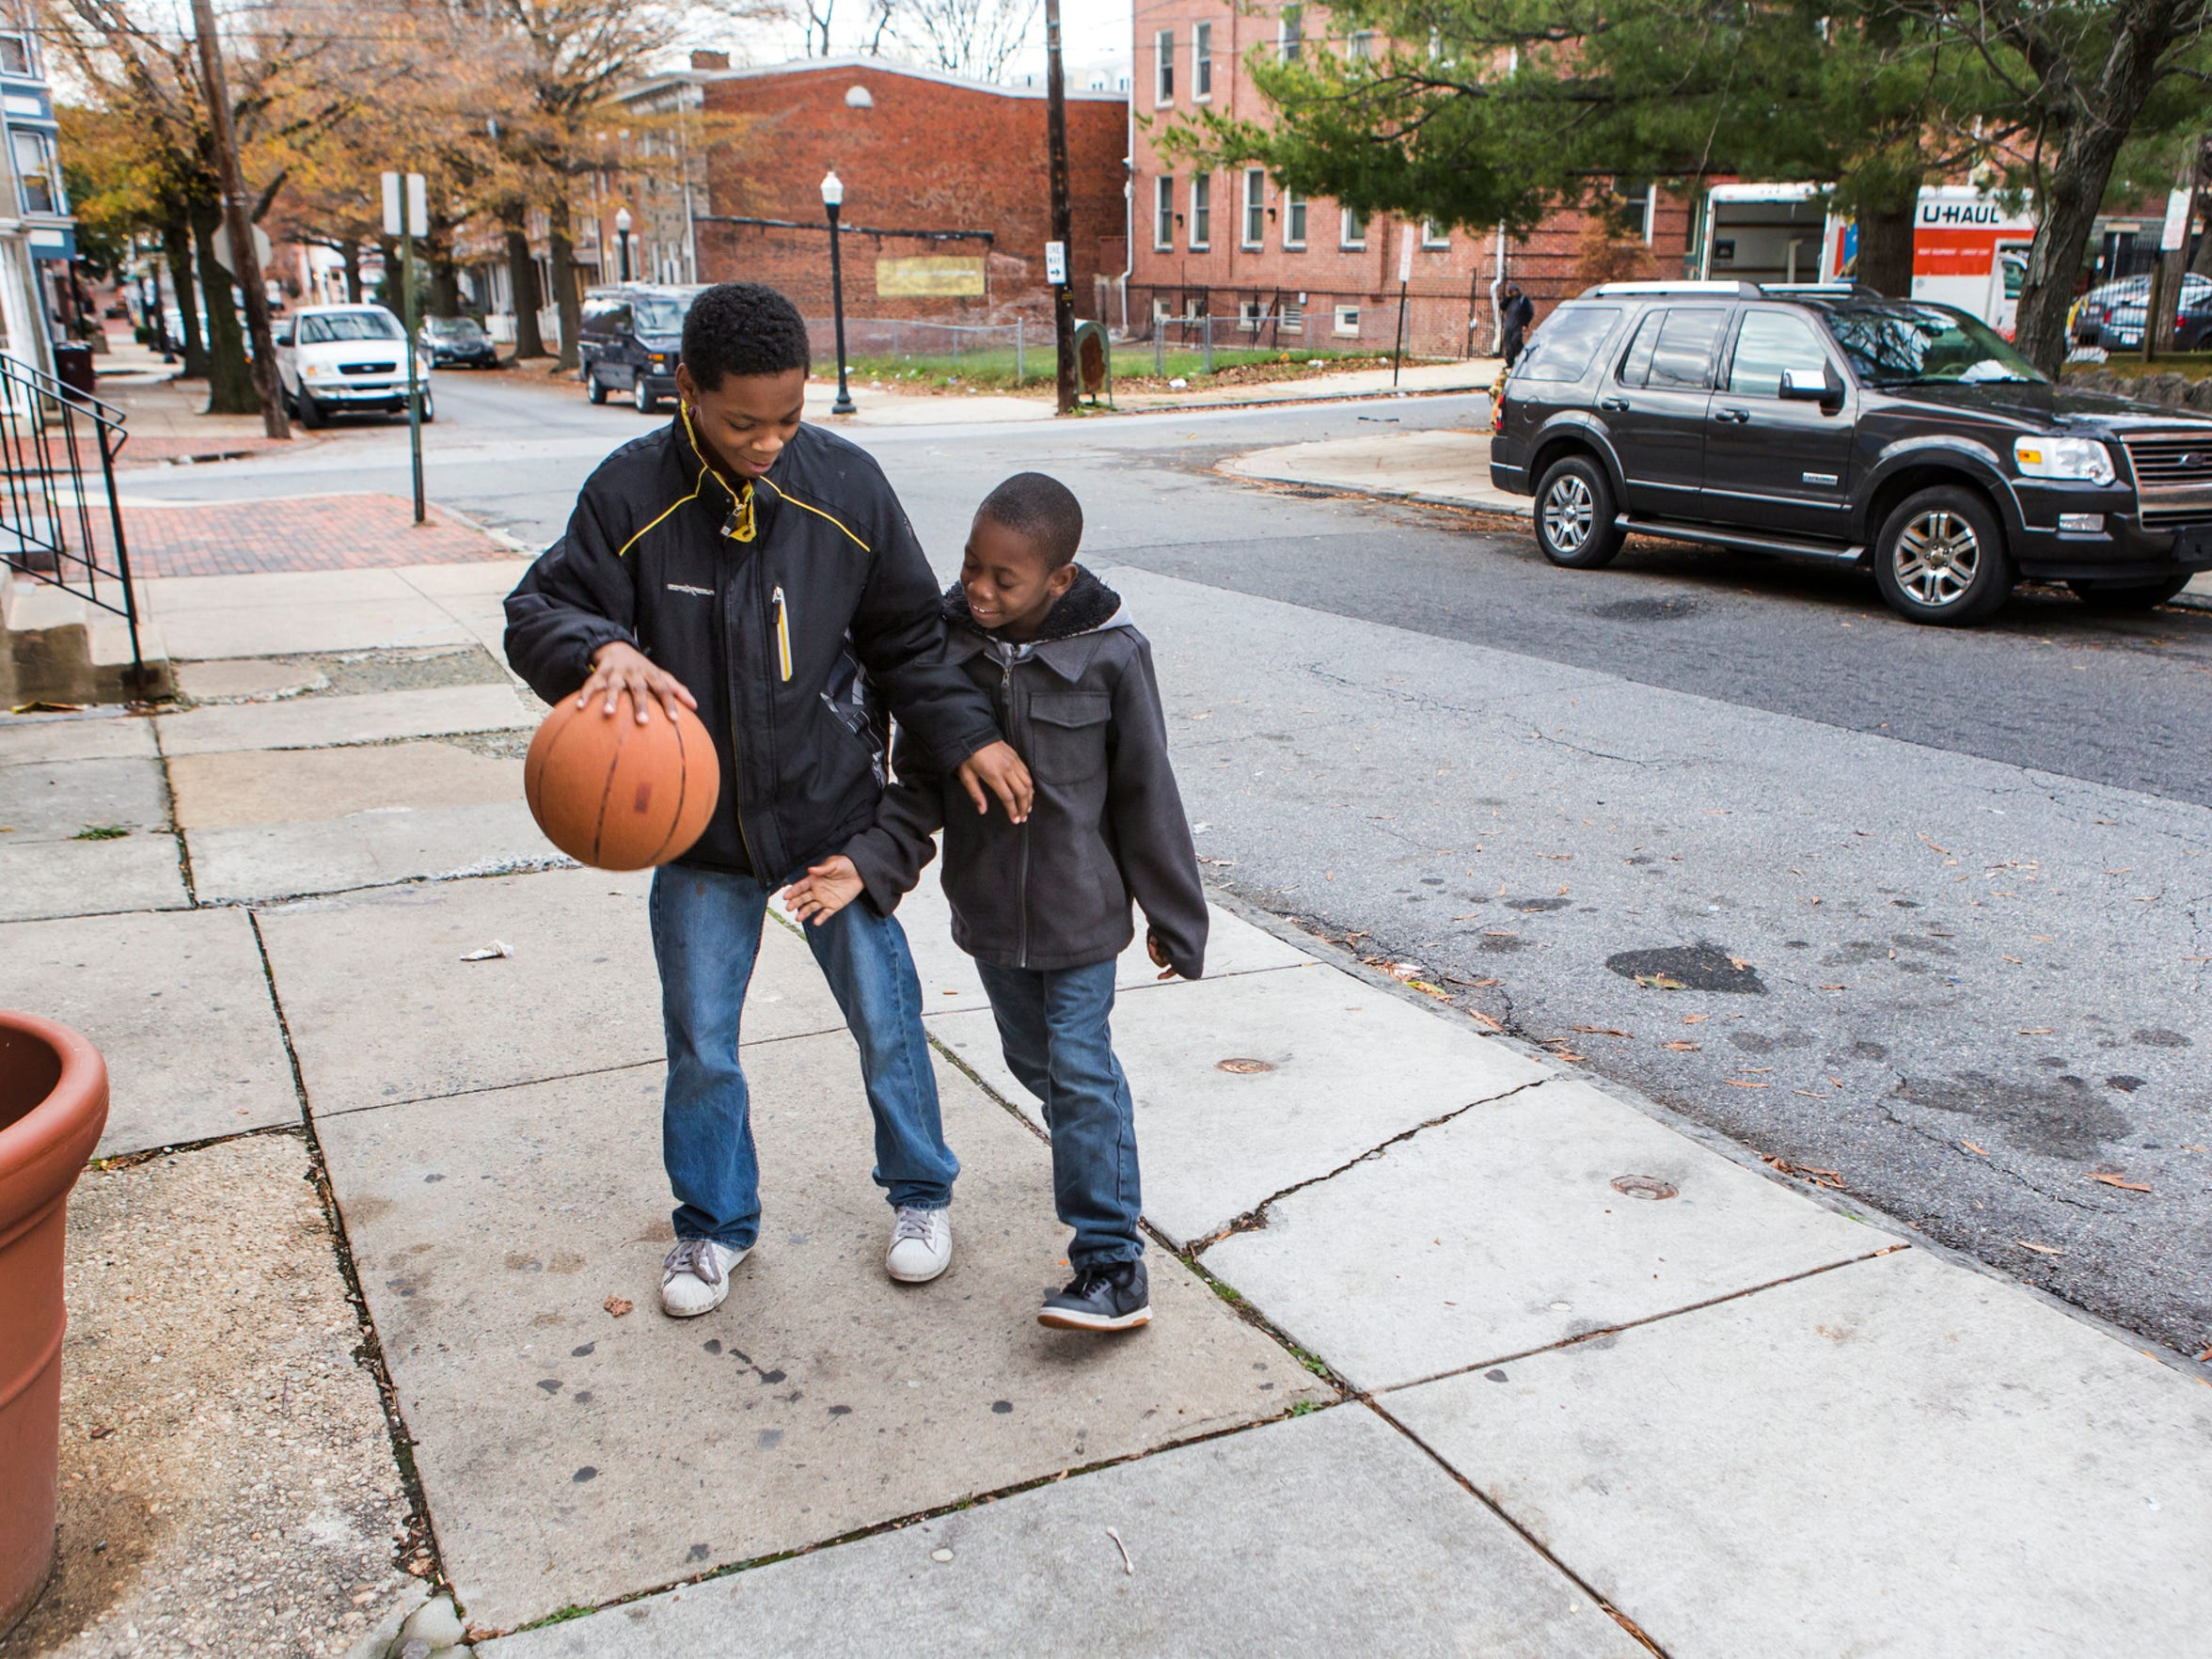 Walter Potter, 13, (left) plays basketball with his